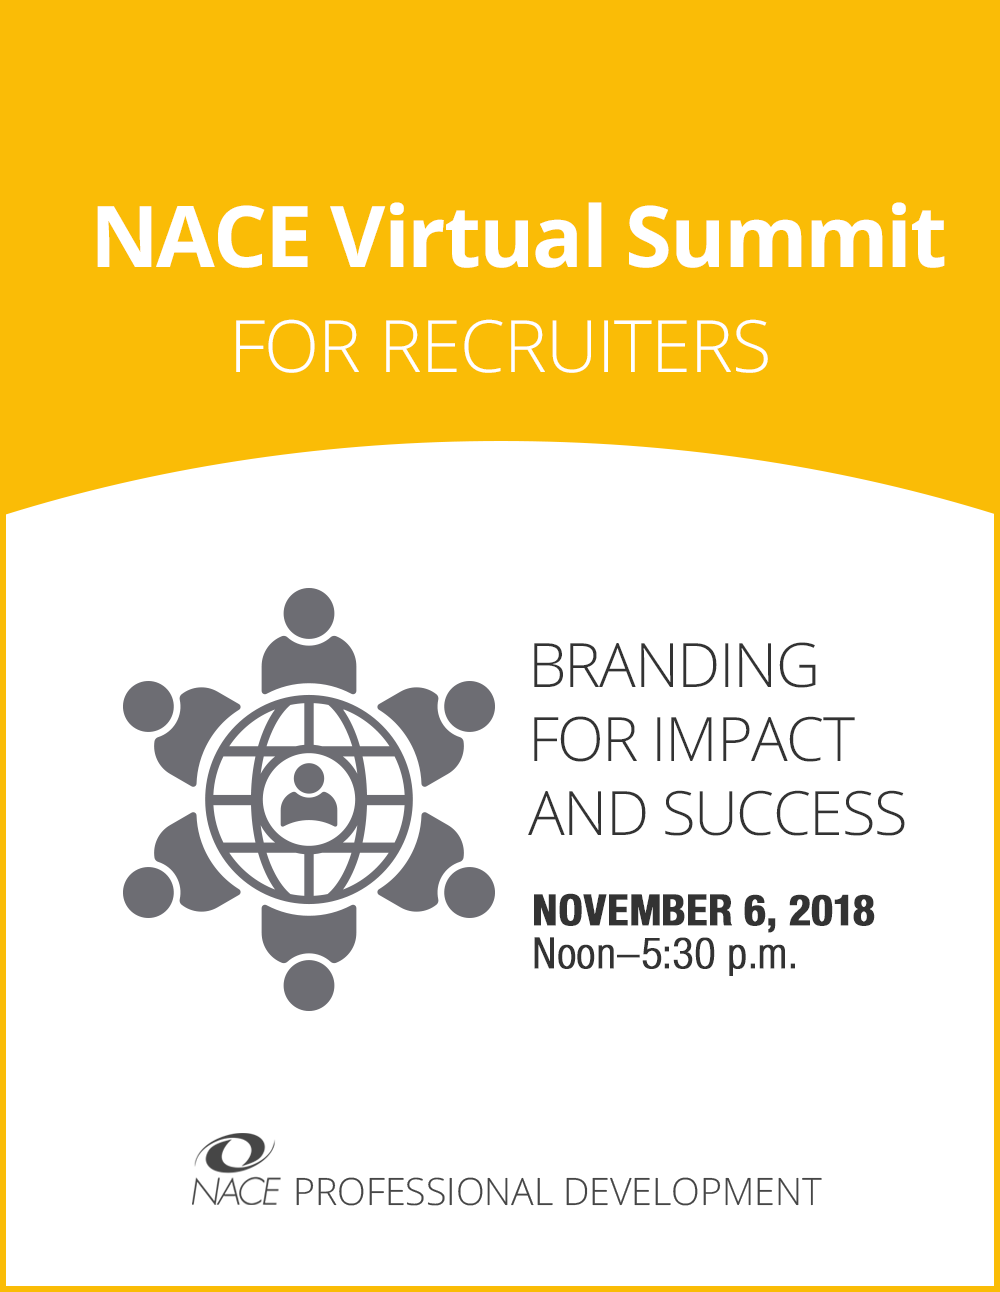 NACE Virtual Summit: Branding for Impact & Success